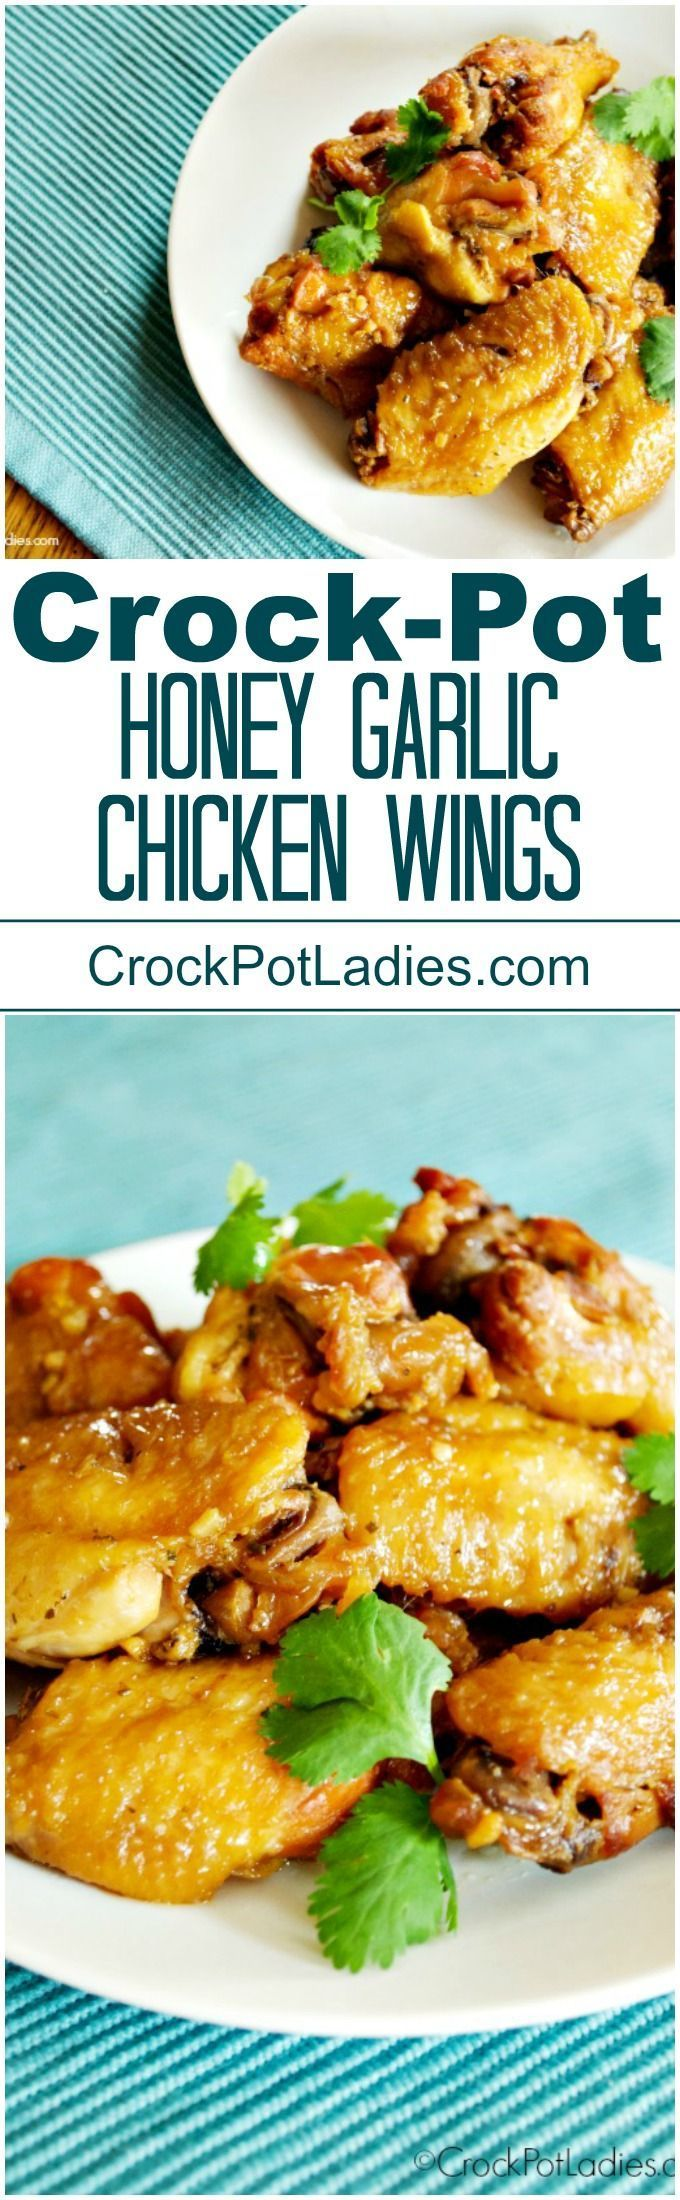 Crock-Pot Honey Garlic Chicken Wings - Sink your teeth into this delicious recipe for Crock-Pot Honey Garlic Chicken Wings! Served as an appetizer or main dish, these wings are super yummy! #GlutenFree options too! via @CrockPotLadies